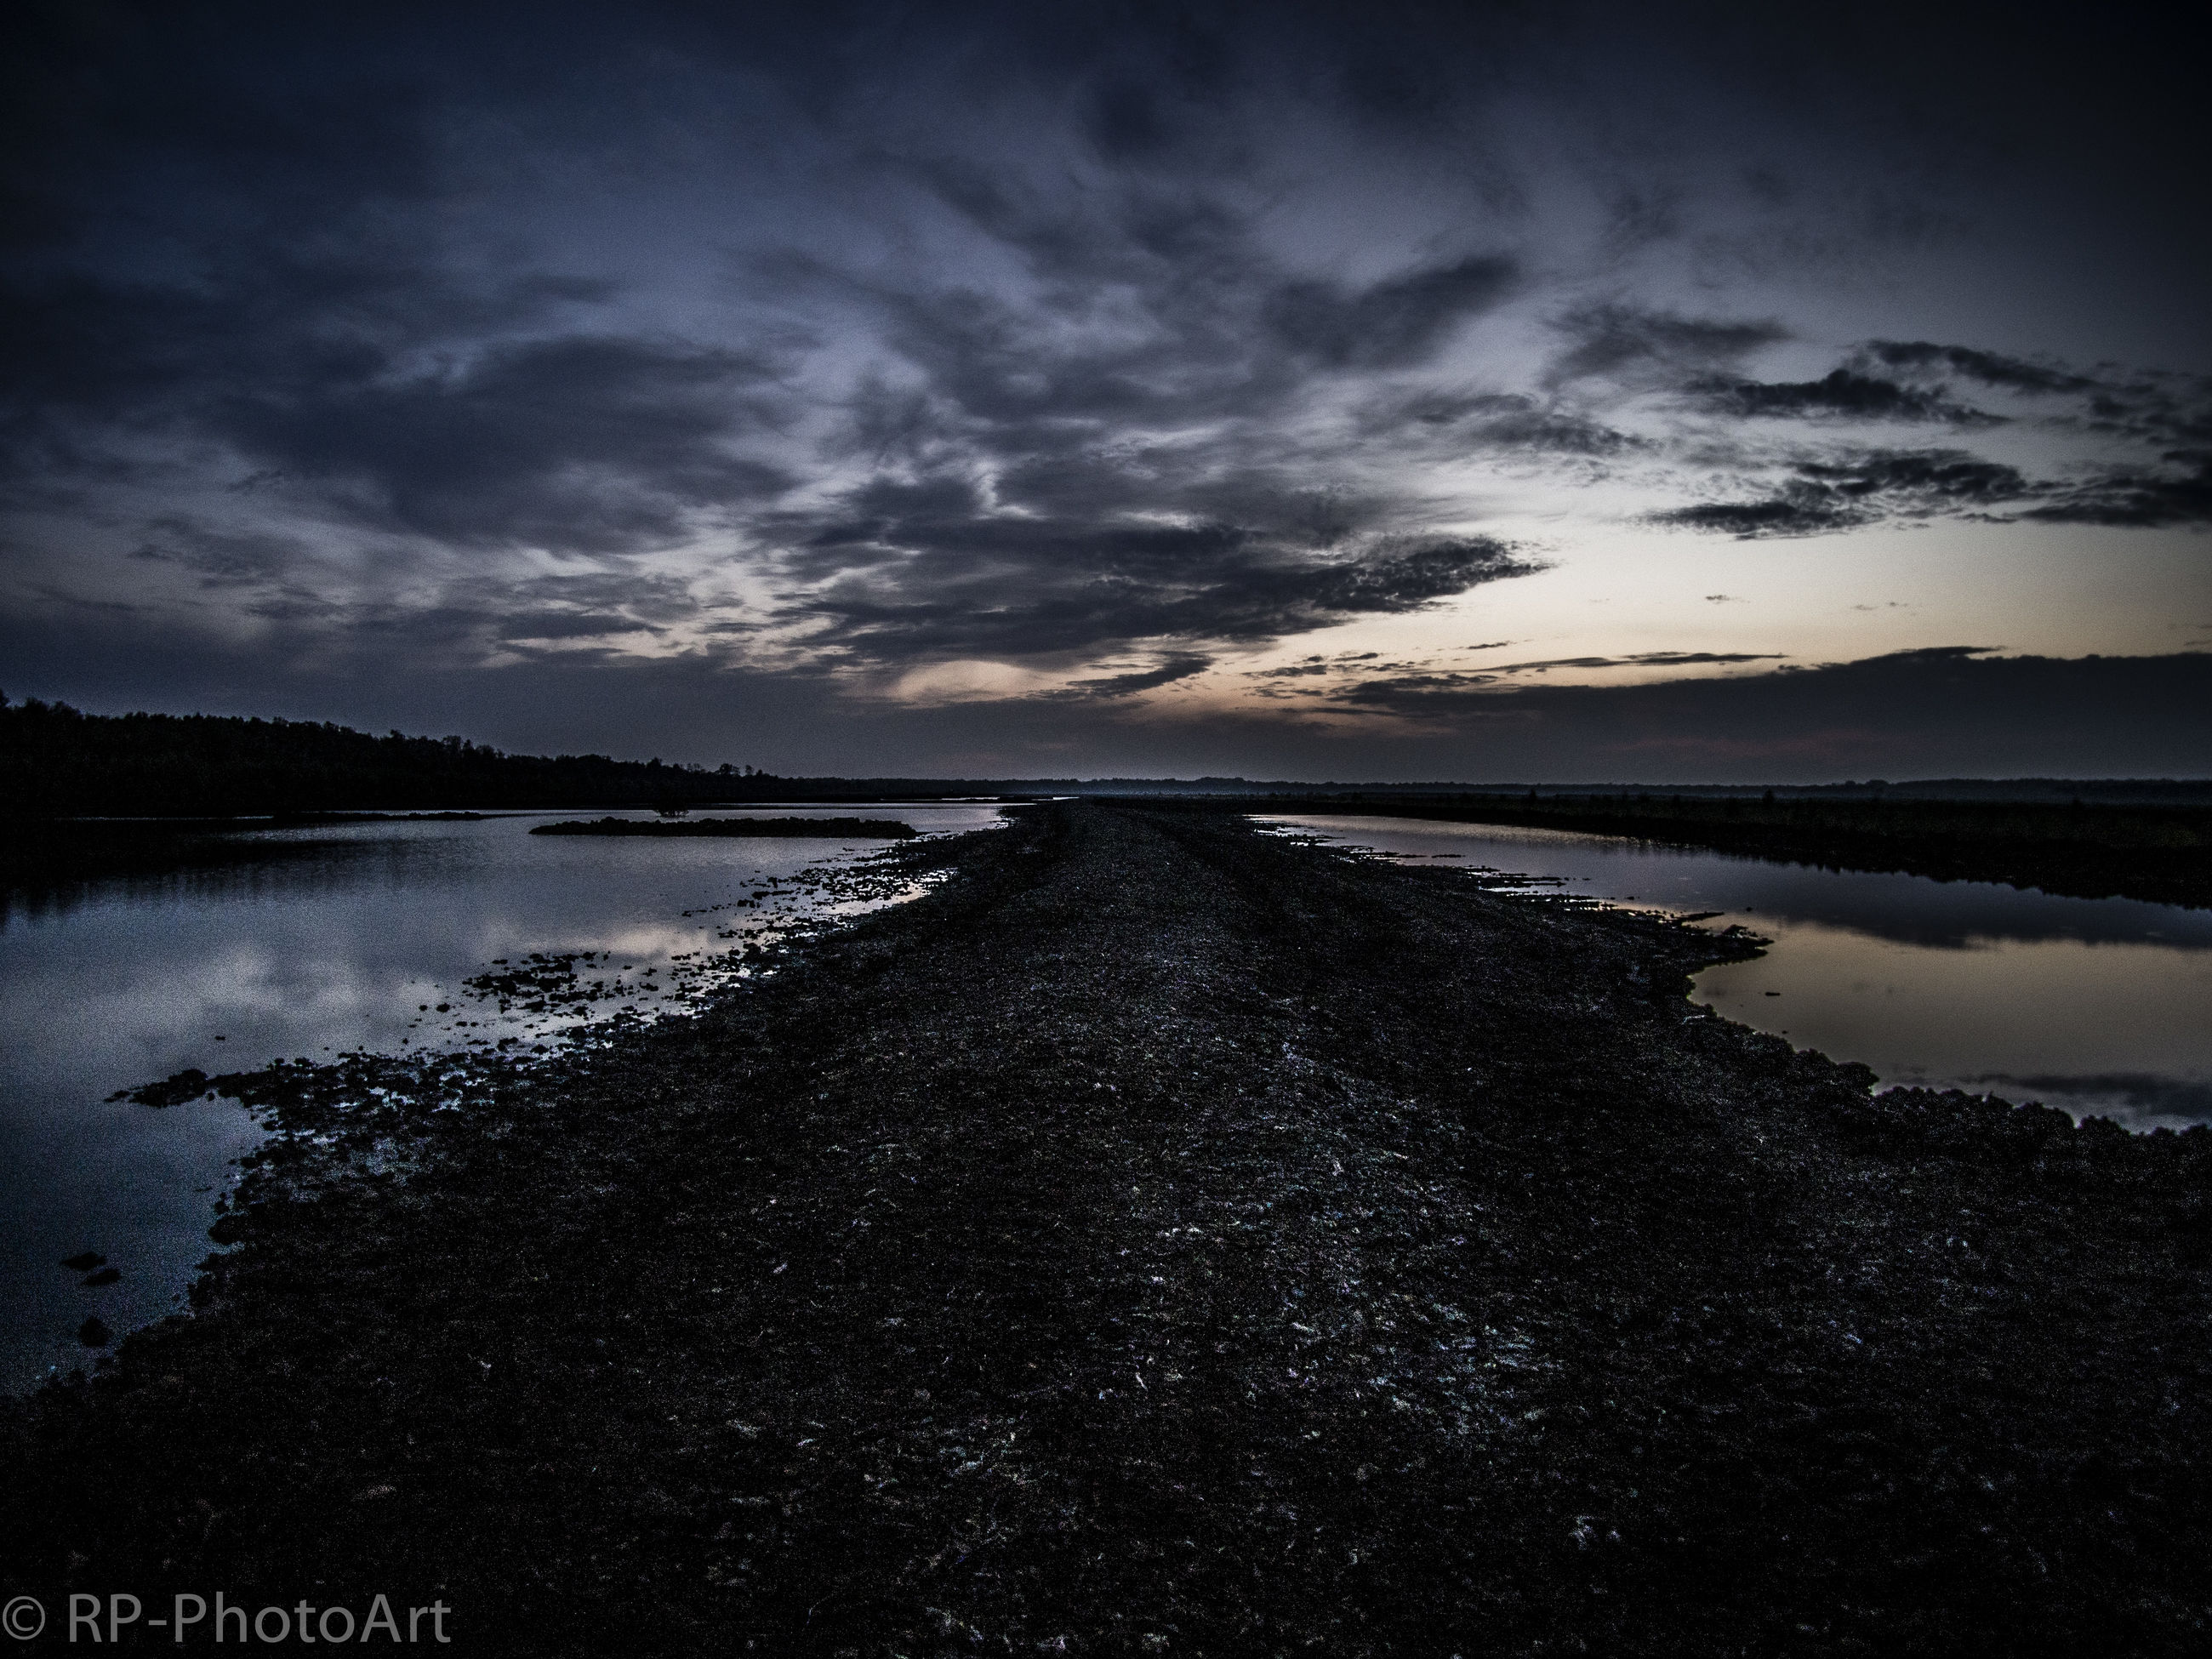 water, sky, tranquil scene, scenics, tranquility, beauty in nature, sea, cloud - sky, nature, cloudy, beach, horizon over water, shore, dusk, idyllic, cloud, reflection, calm, outdoors, overcast